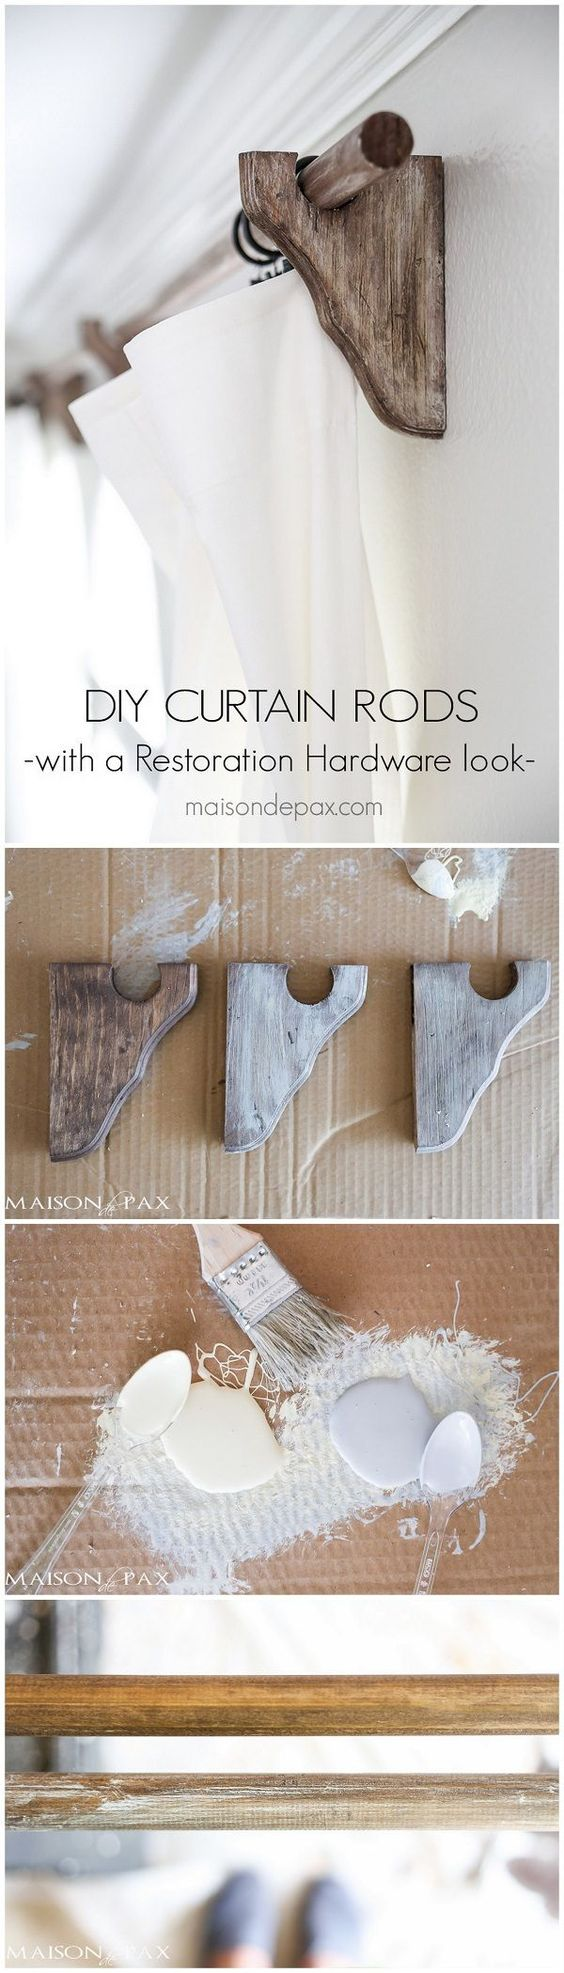 Wood Curtain Rods with a Restoration Hardware Look.